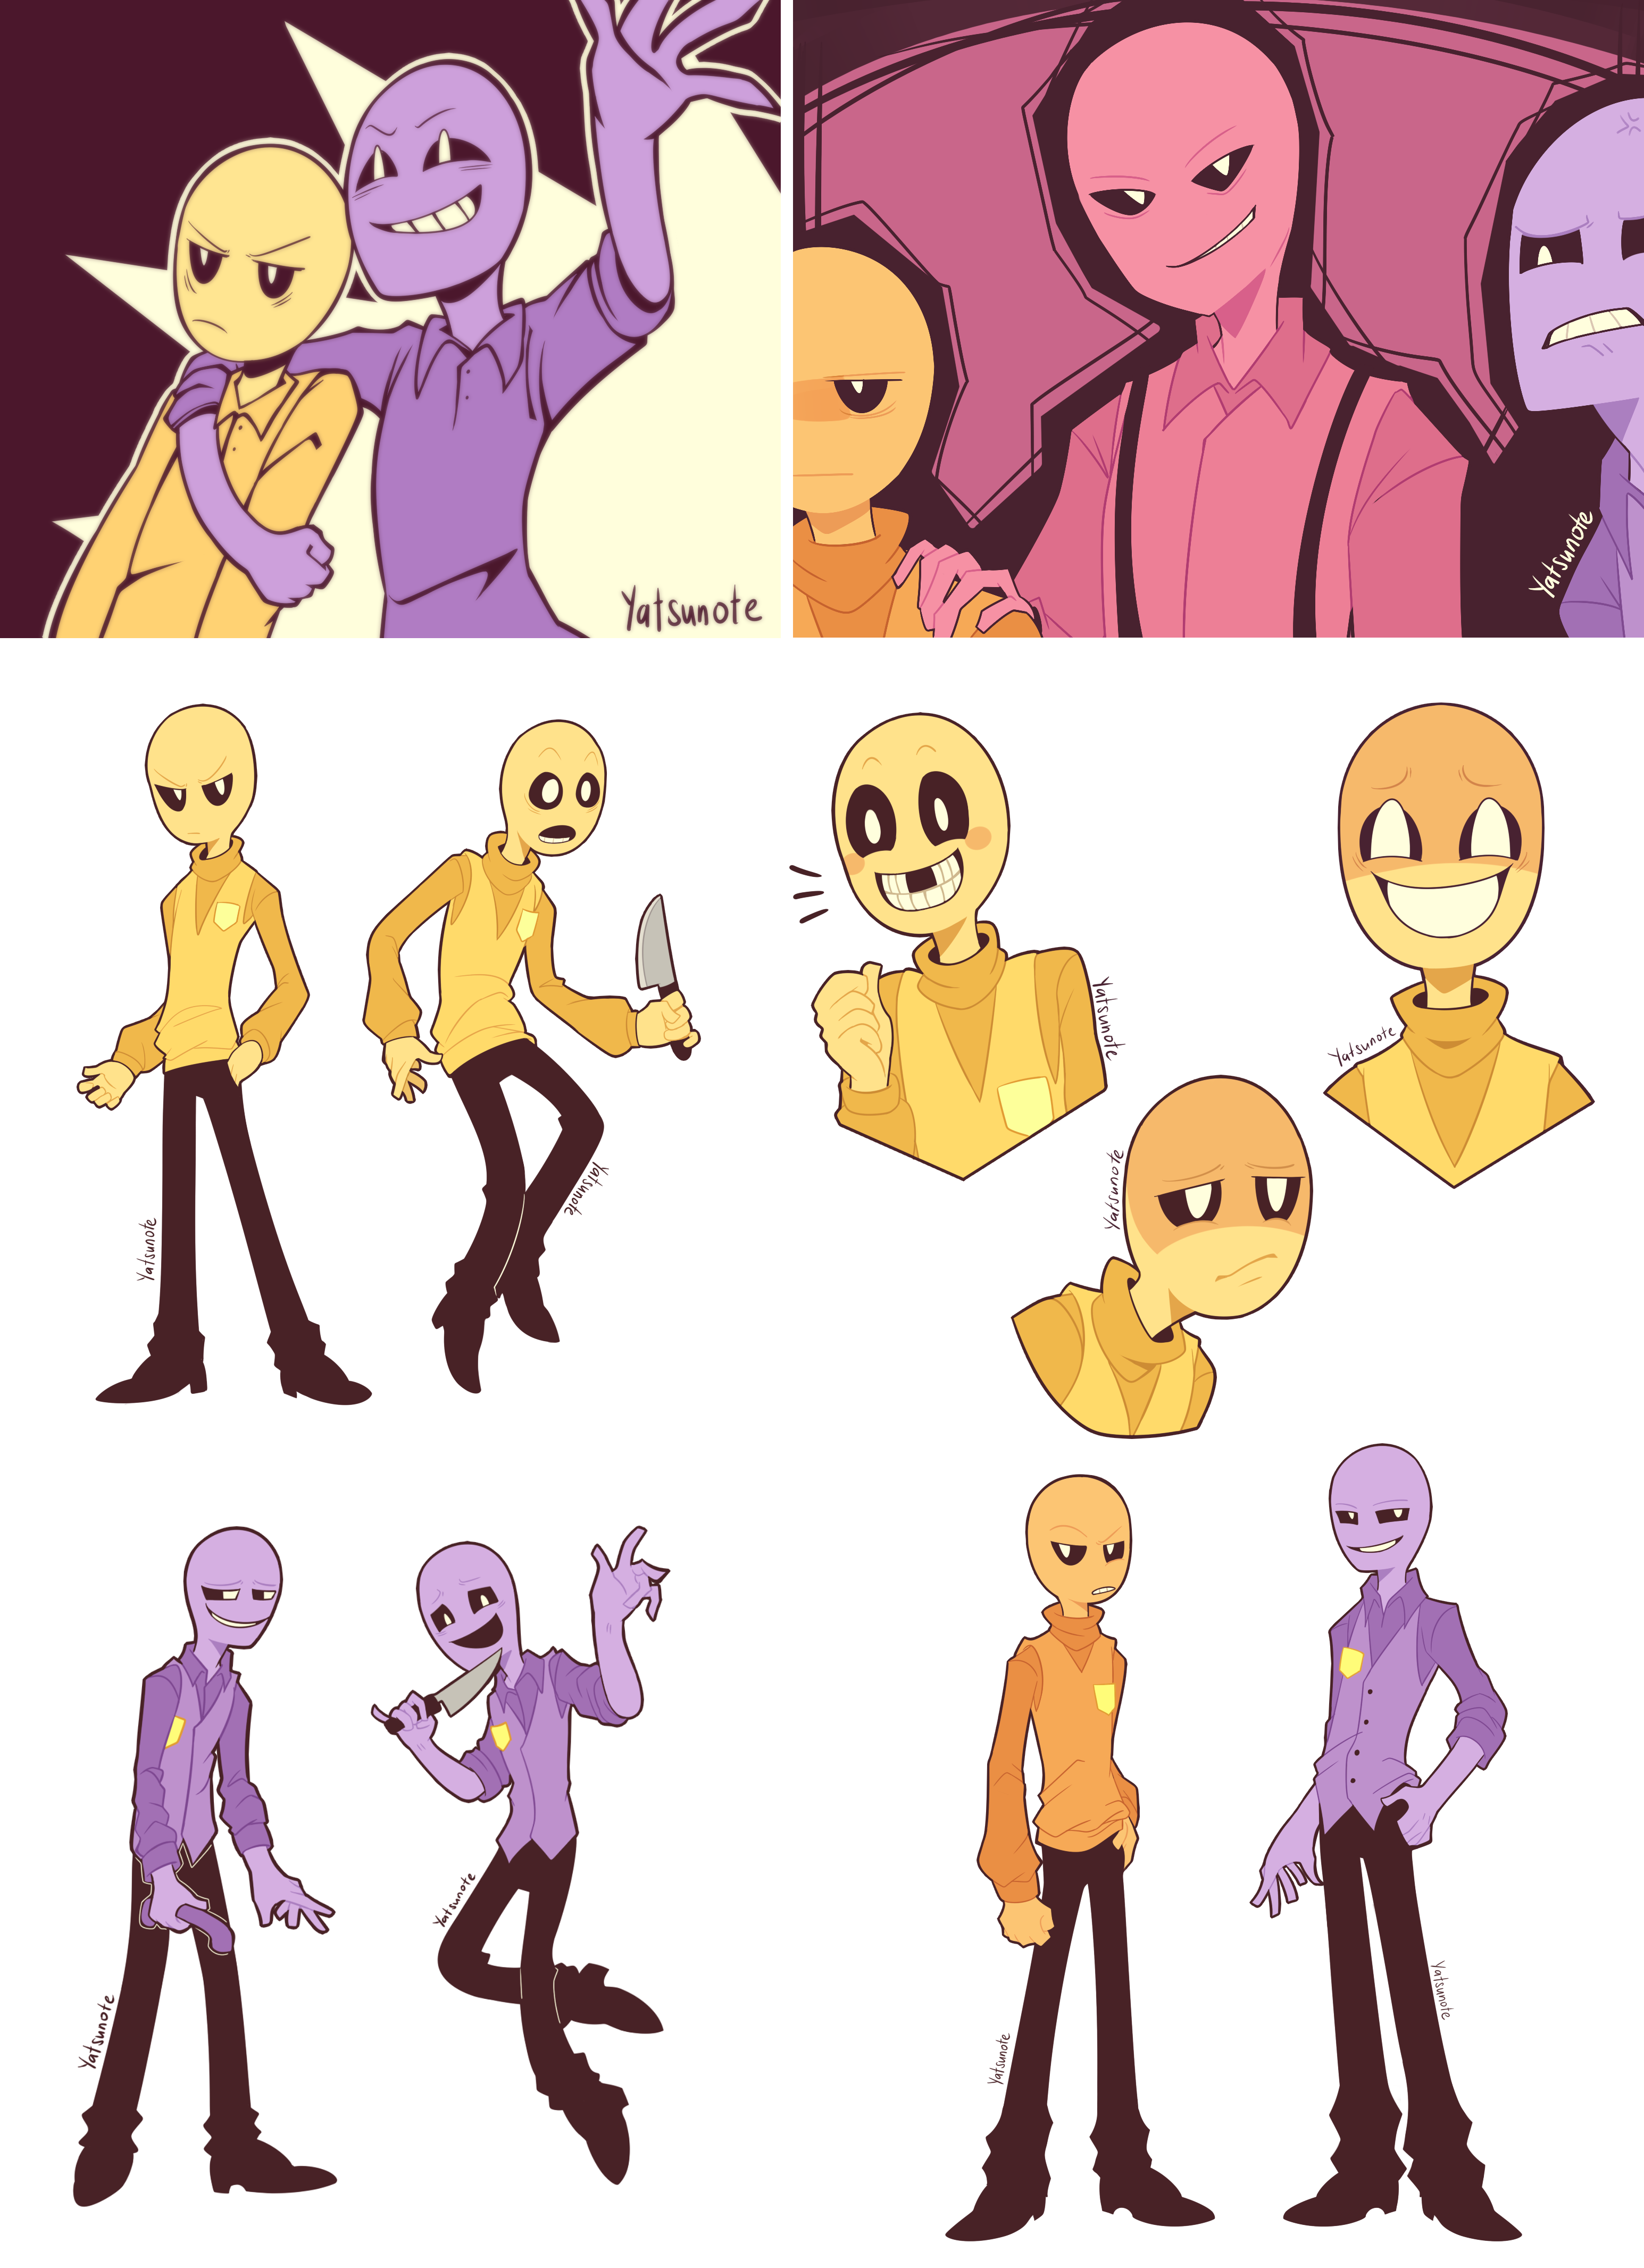 Dsaf By Yatsunote On Deviantart 1.0.1 about 2 years ago. dsaf by yatsunote on deviantart